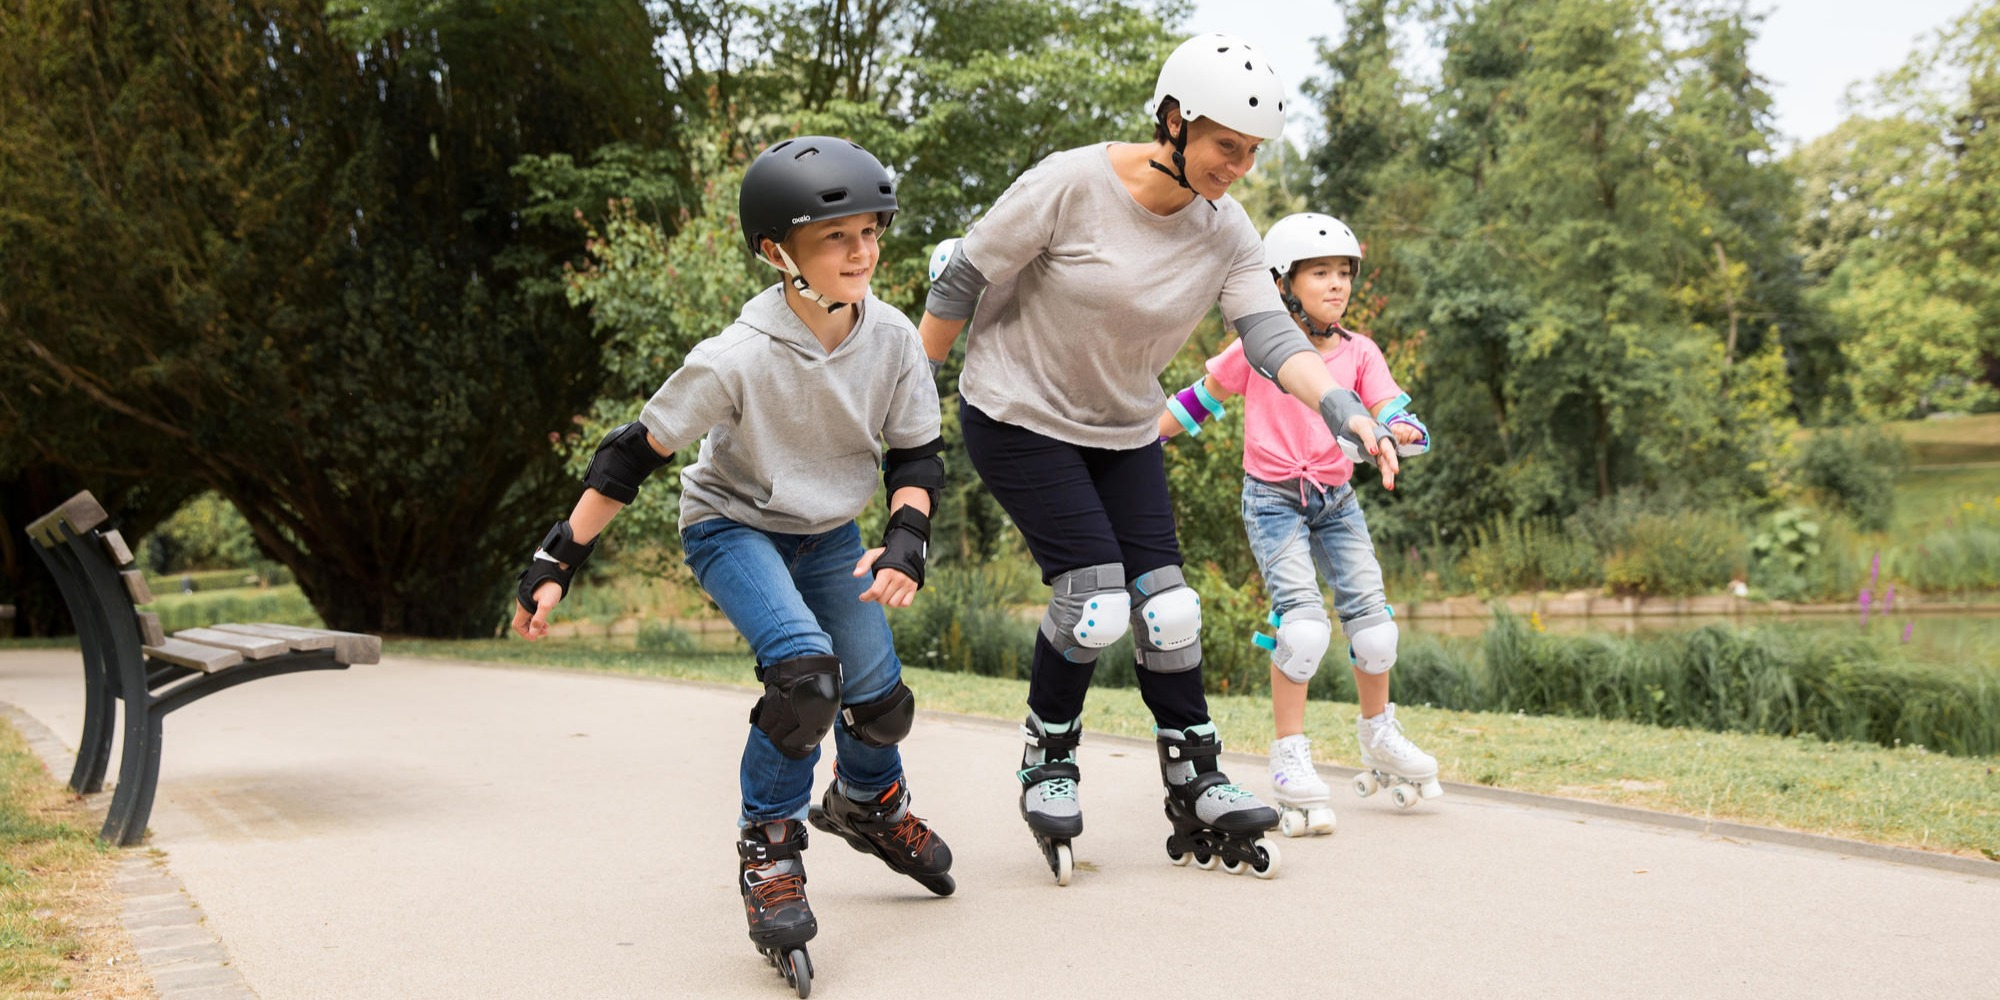 How To Teach A Child To Roller Skate